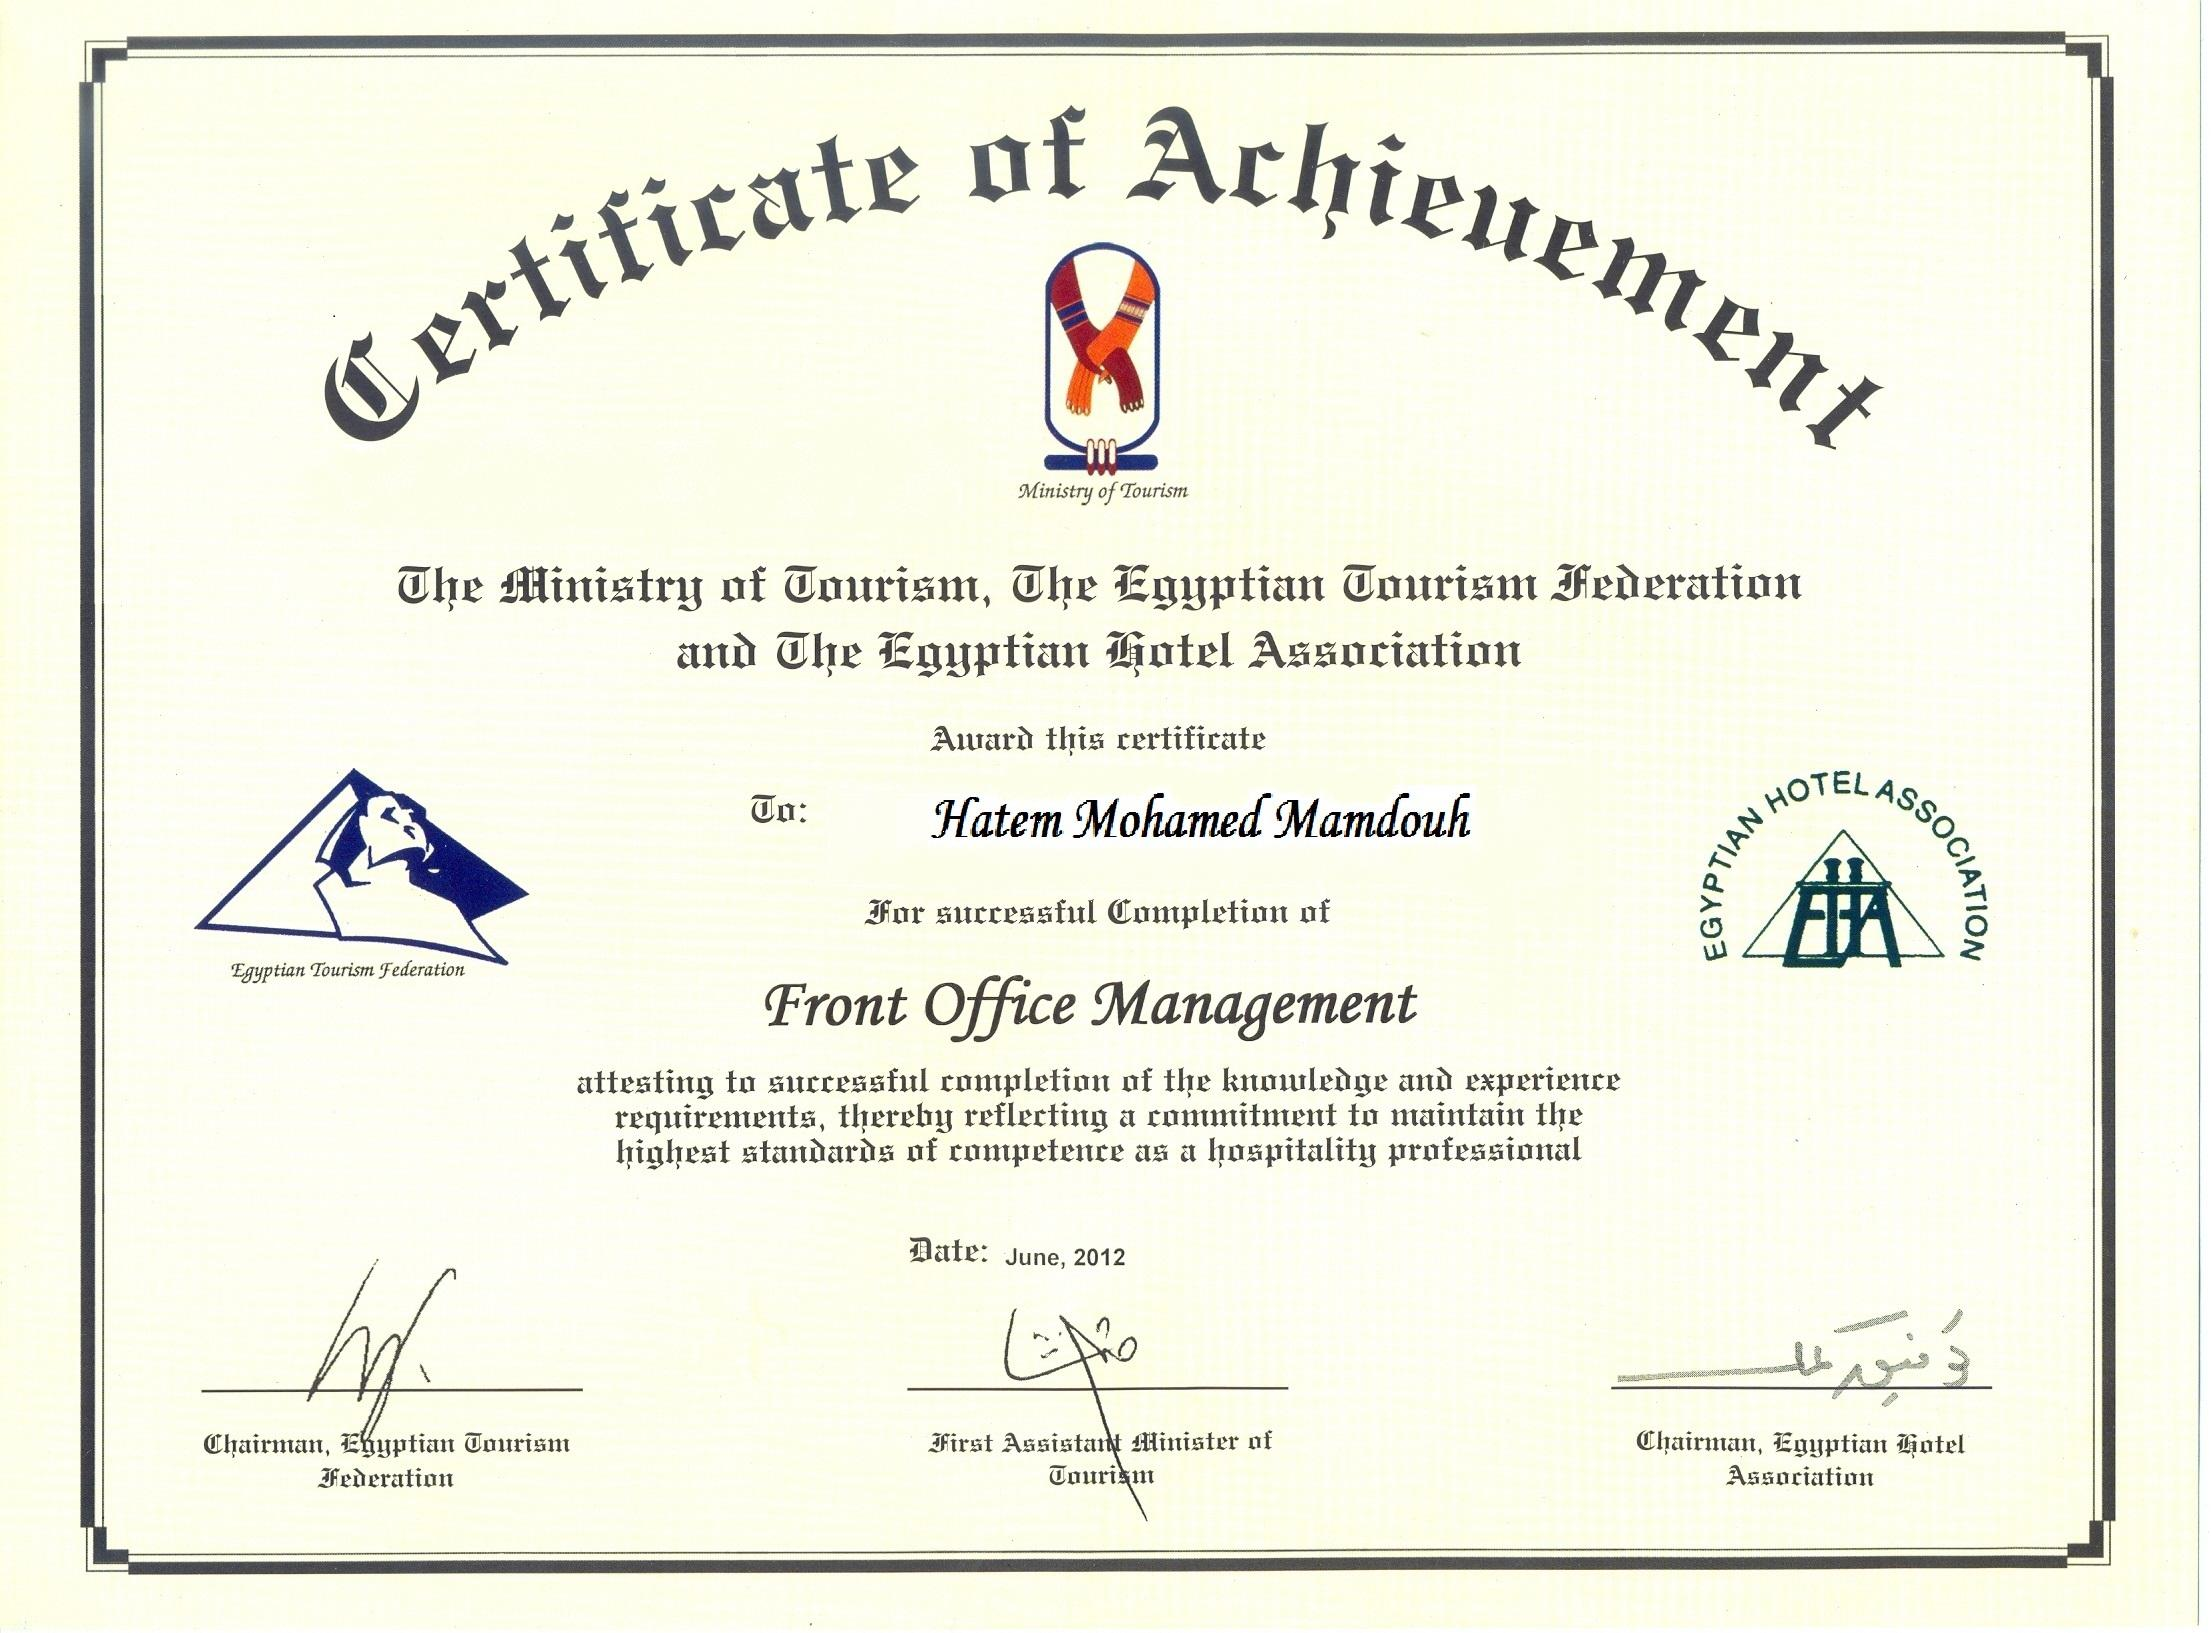 FRONT OFFICE MANAGEMENT CERTIFICATE.jpg